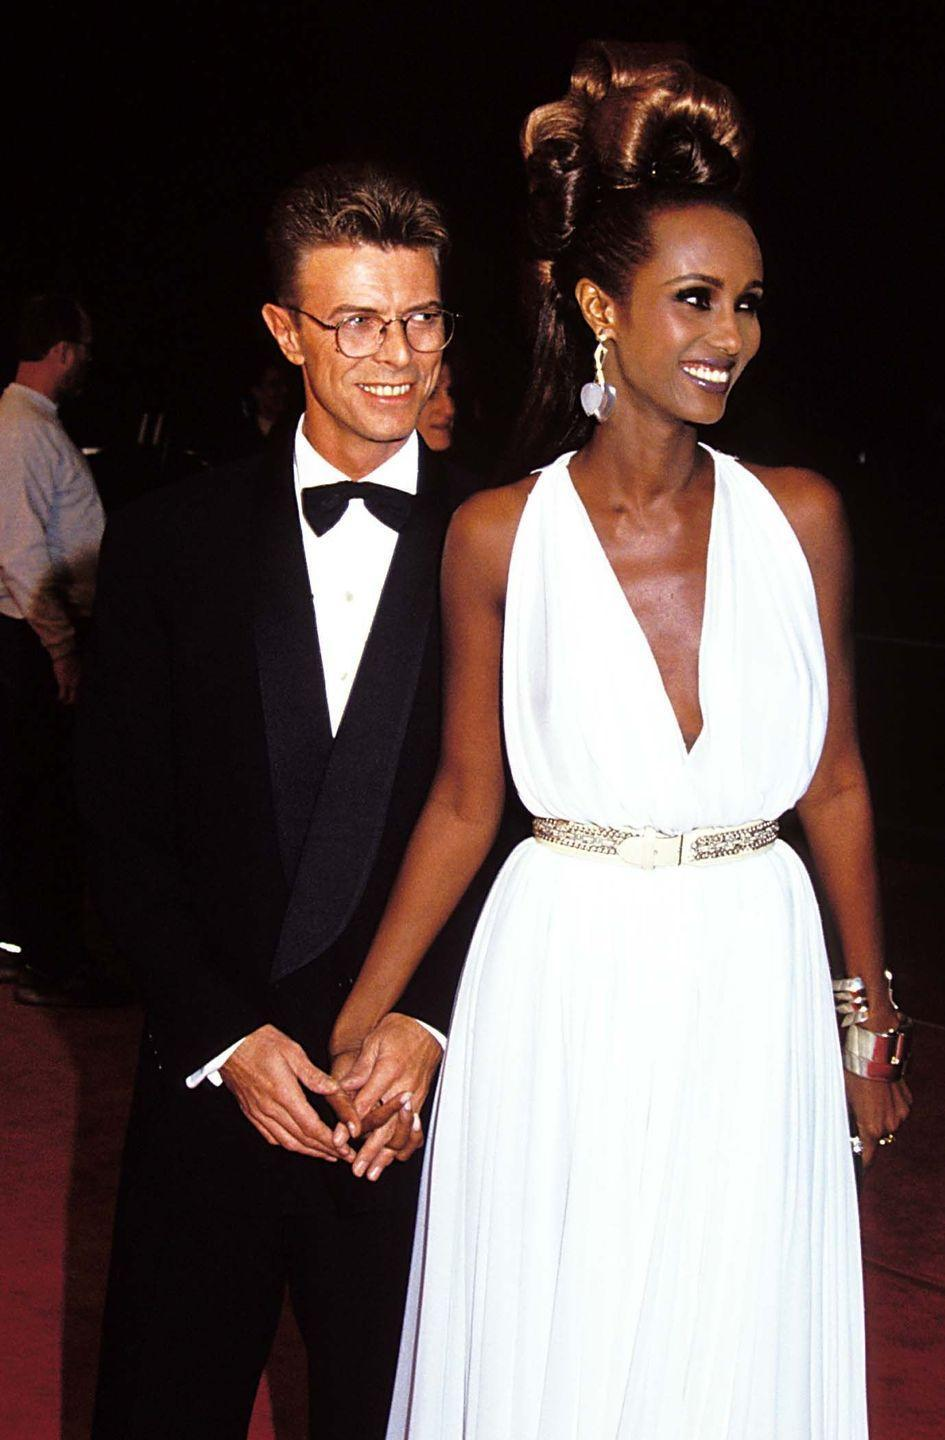 """<p>Rocker David Bowie and Iman <a href=""""http://diffuser.fm/david-bowie-iman/"""" rel=""""nofollow noopener"""" target=""""_blank"""" data-ylk=""""slk:married"""" class=""""link rapid-noclick-resp"""">married</a> on April 24, 1992, with only three people in attendance. The couple wed in a civil ceremony in Switzerland. They remained married until Bowie's death in January 2016 and have one daughter together, Alexandria Jones. </p>"""